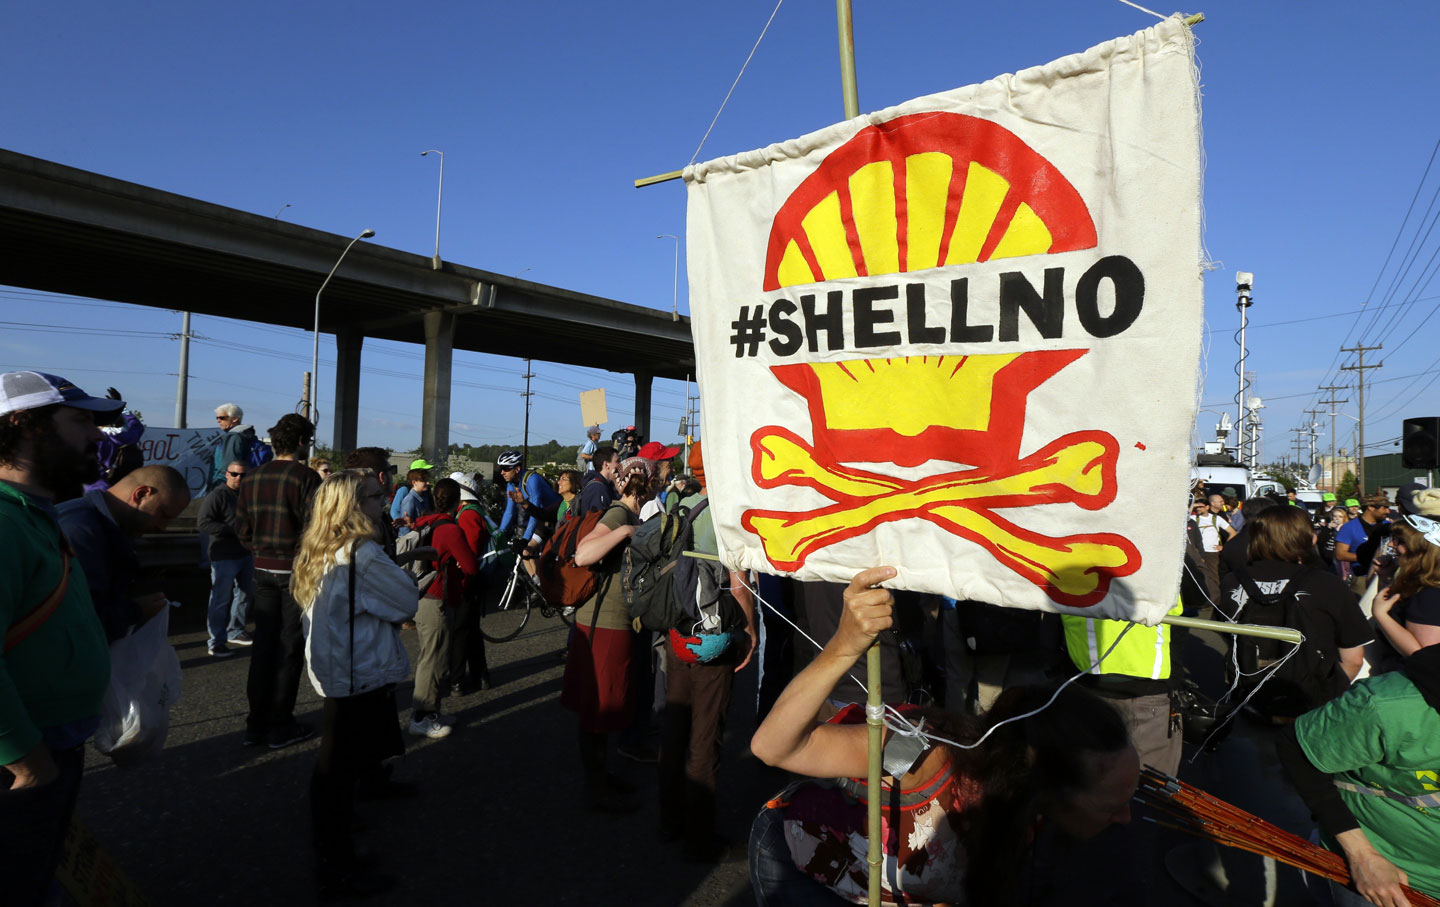 Protesters oppose Artic oil drilling in Seattle